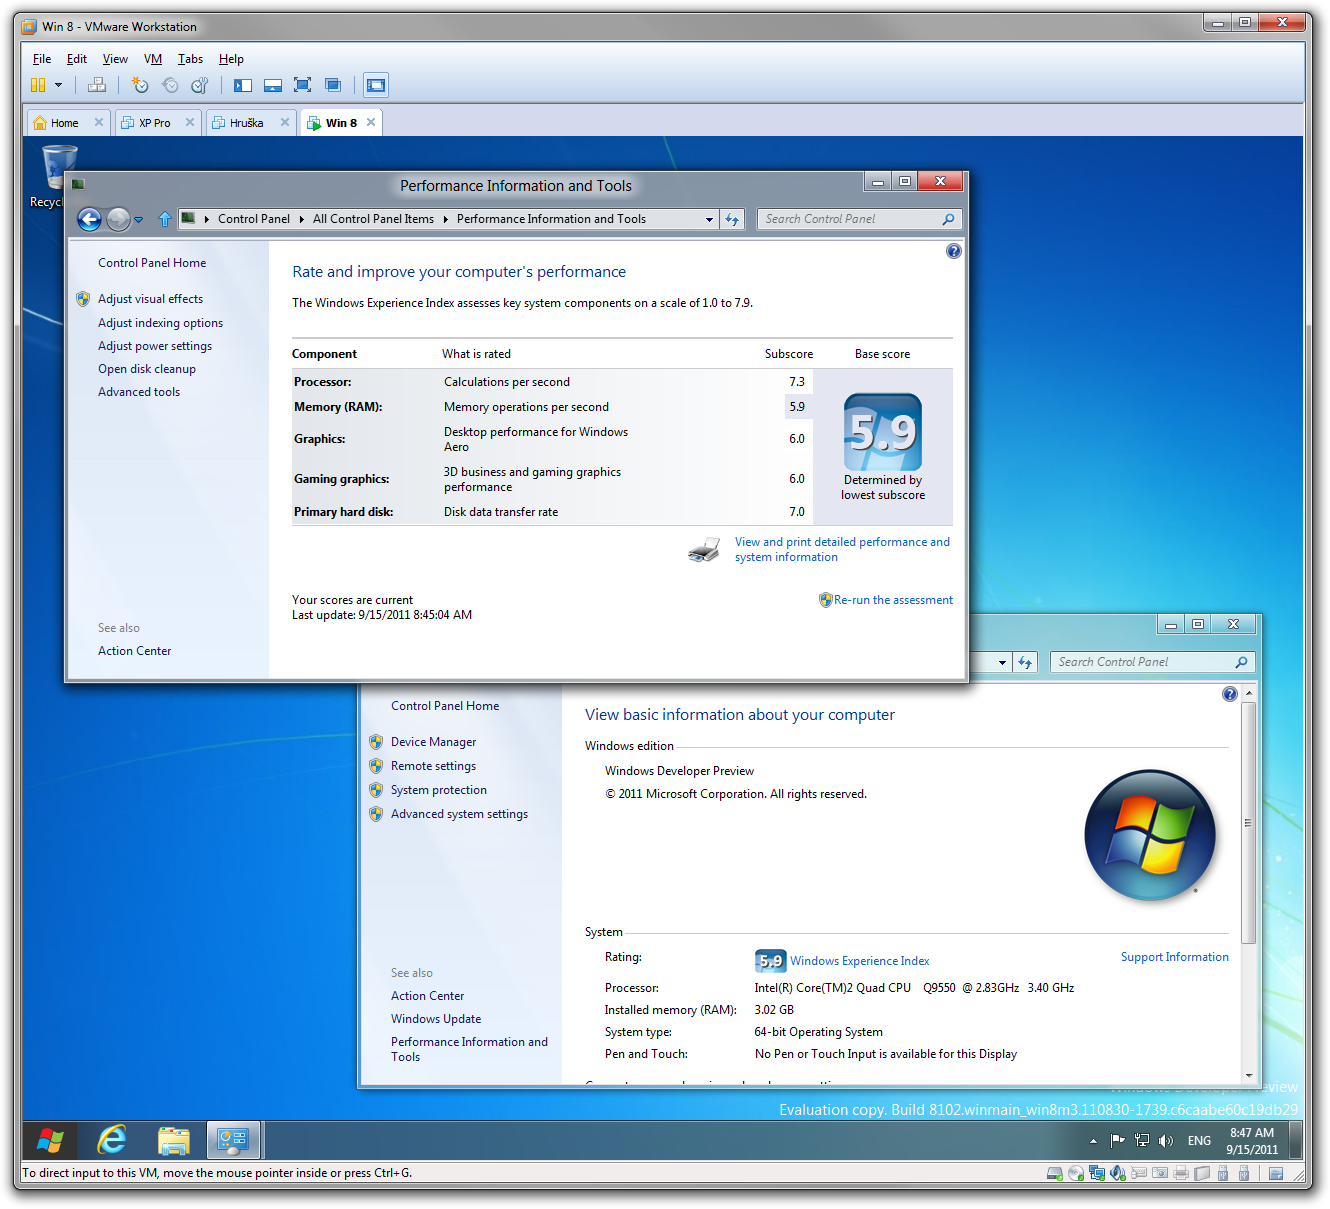 How to download vmware workstation for free